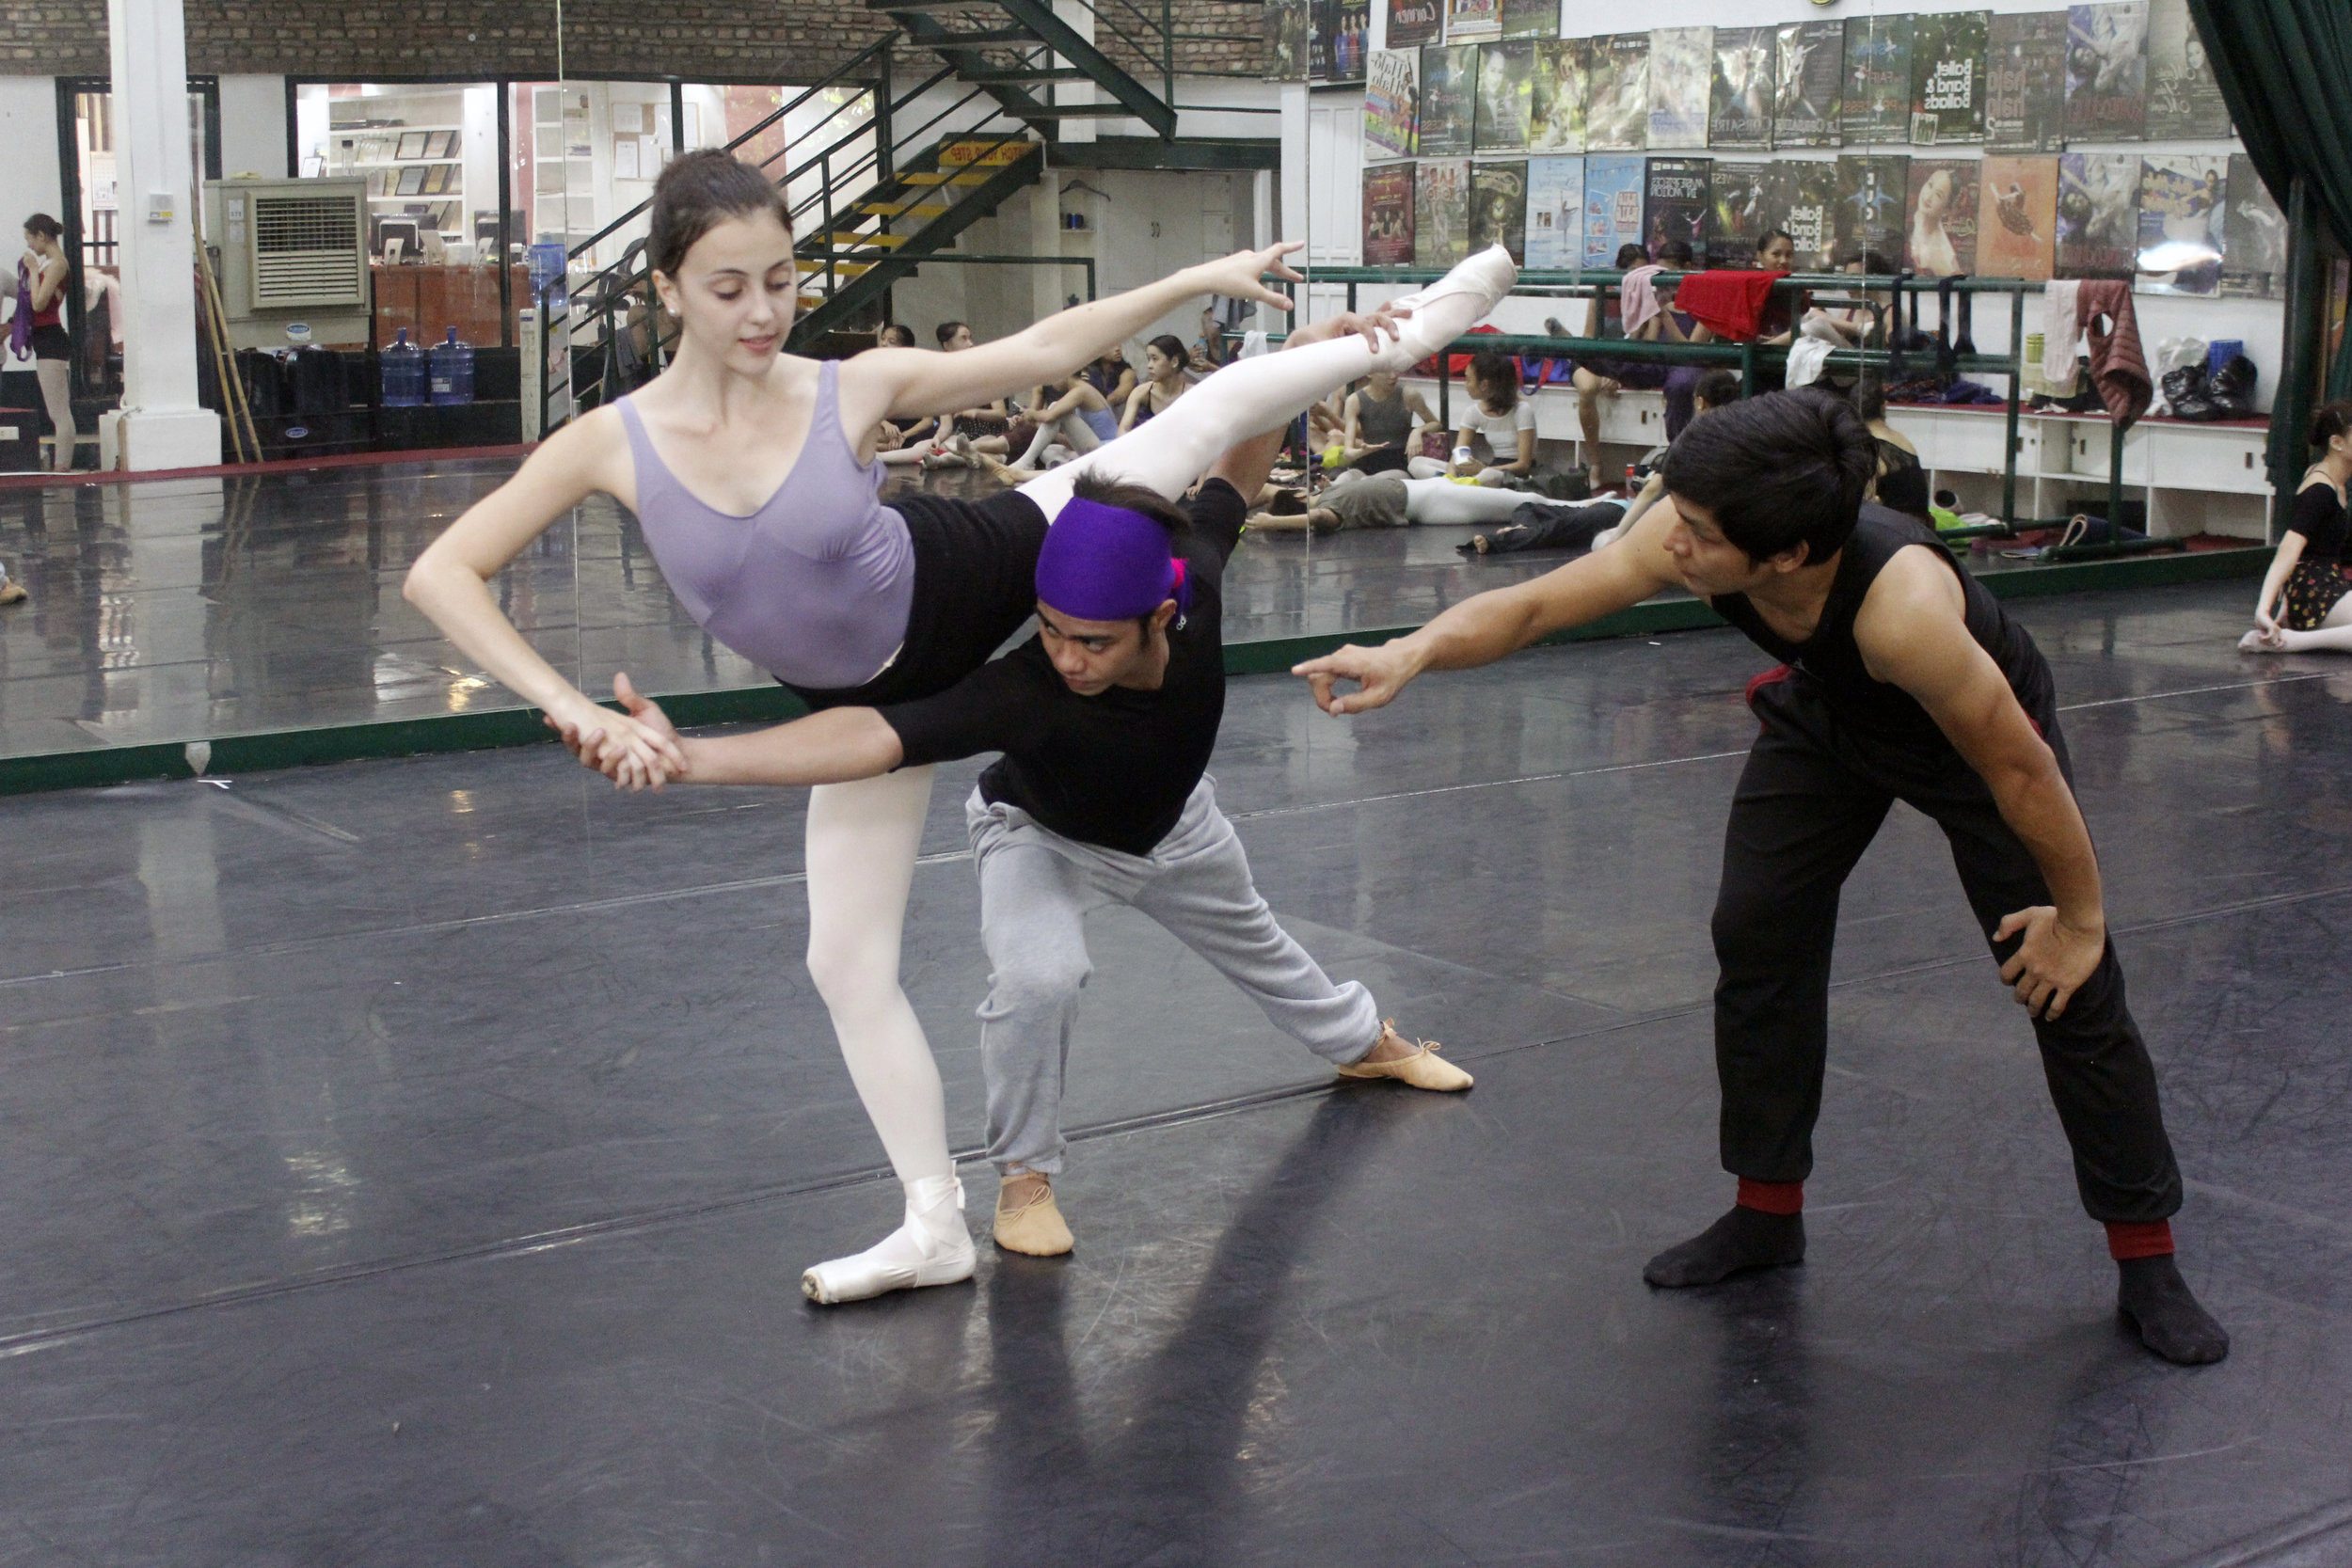 Big break: Rehearsing with principal dancer Katherine Barkman and choreographer Gerardo Francisco for  Ibong Adarna  where Elmoe is taking on the lead role of Don Juan. Photo by Jimmy Villanueva